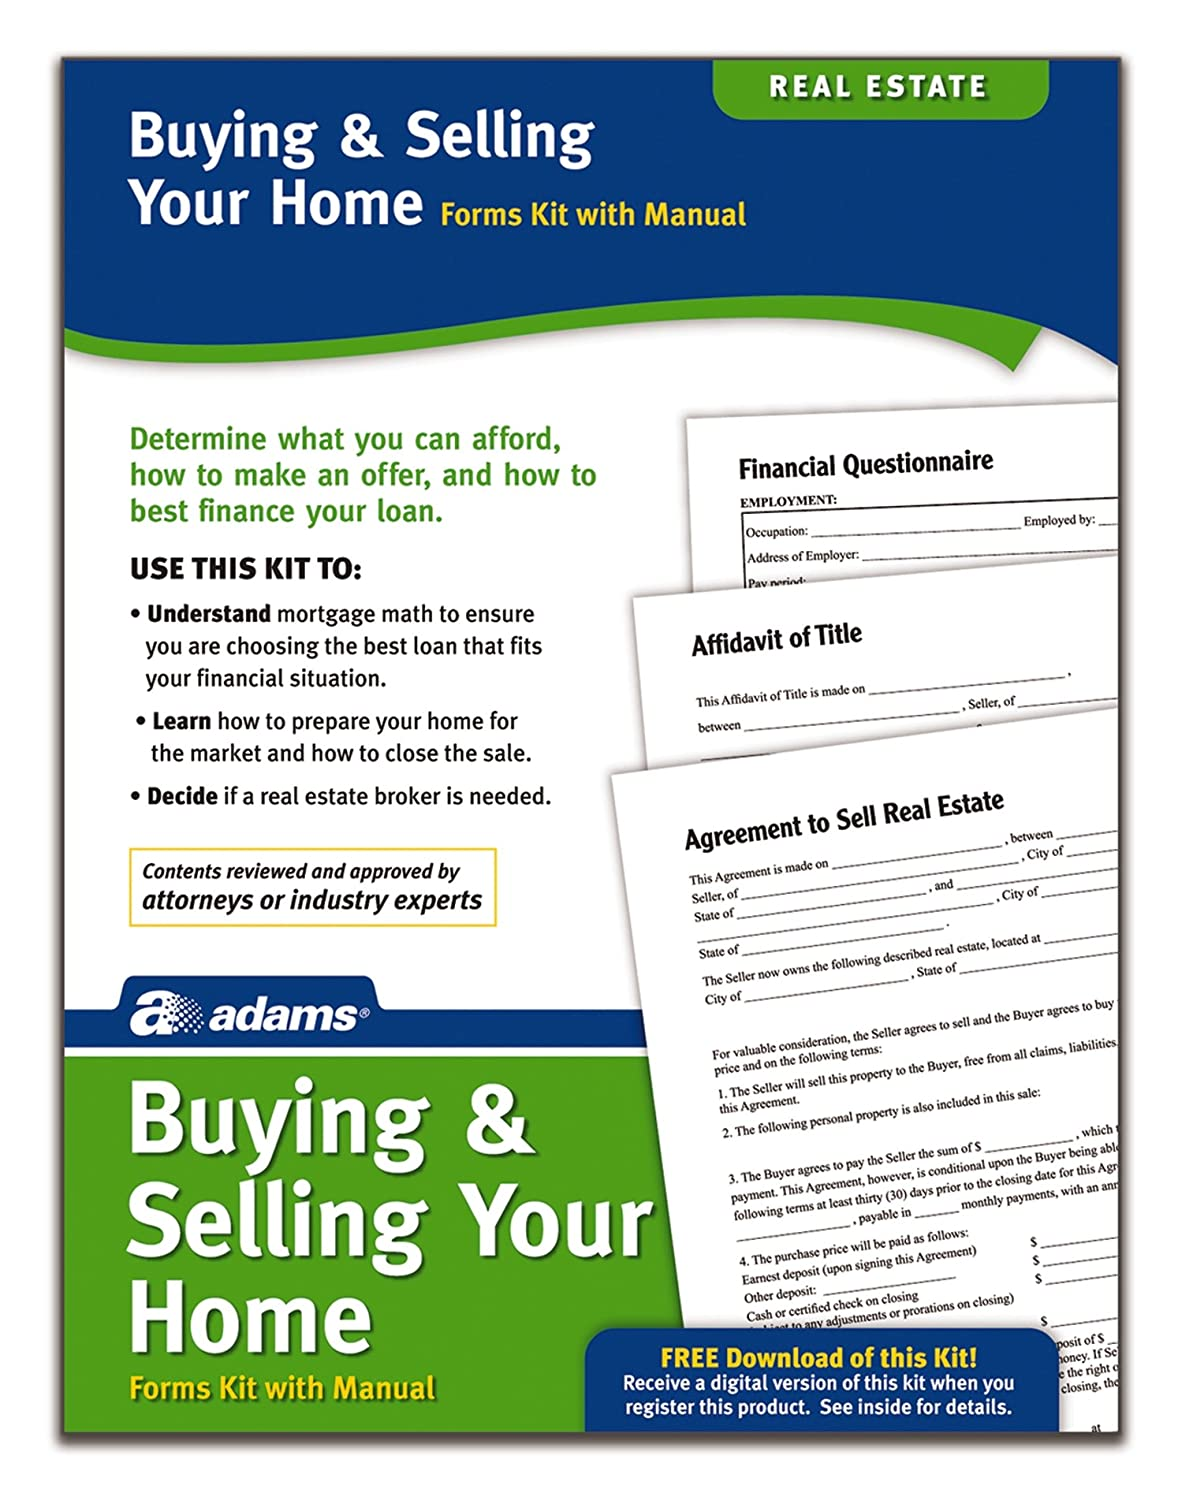 Amazon Adams Buyingselling Your Home Kit Forms And